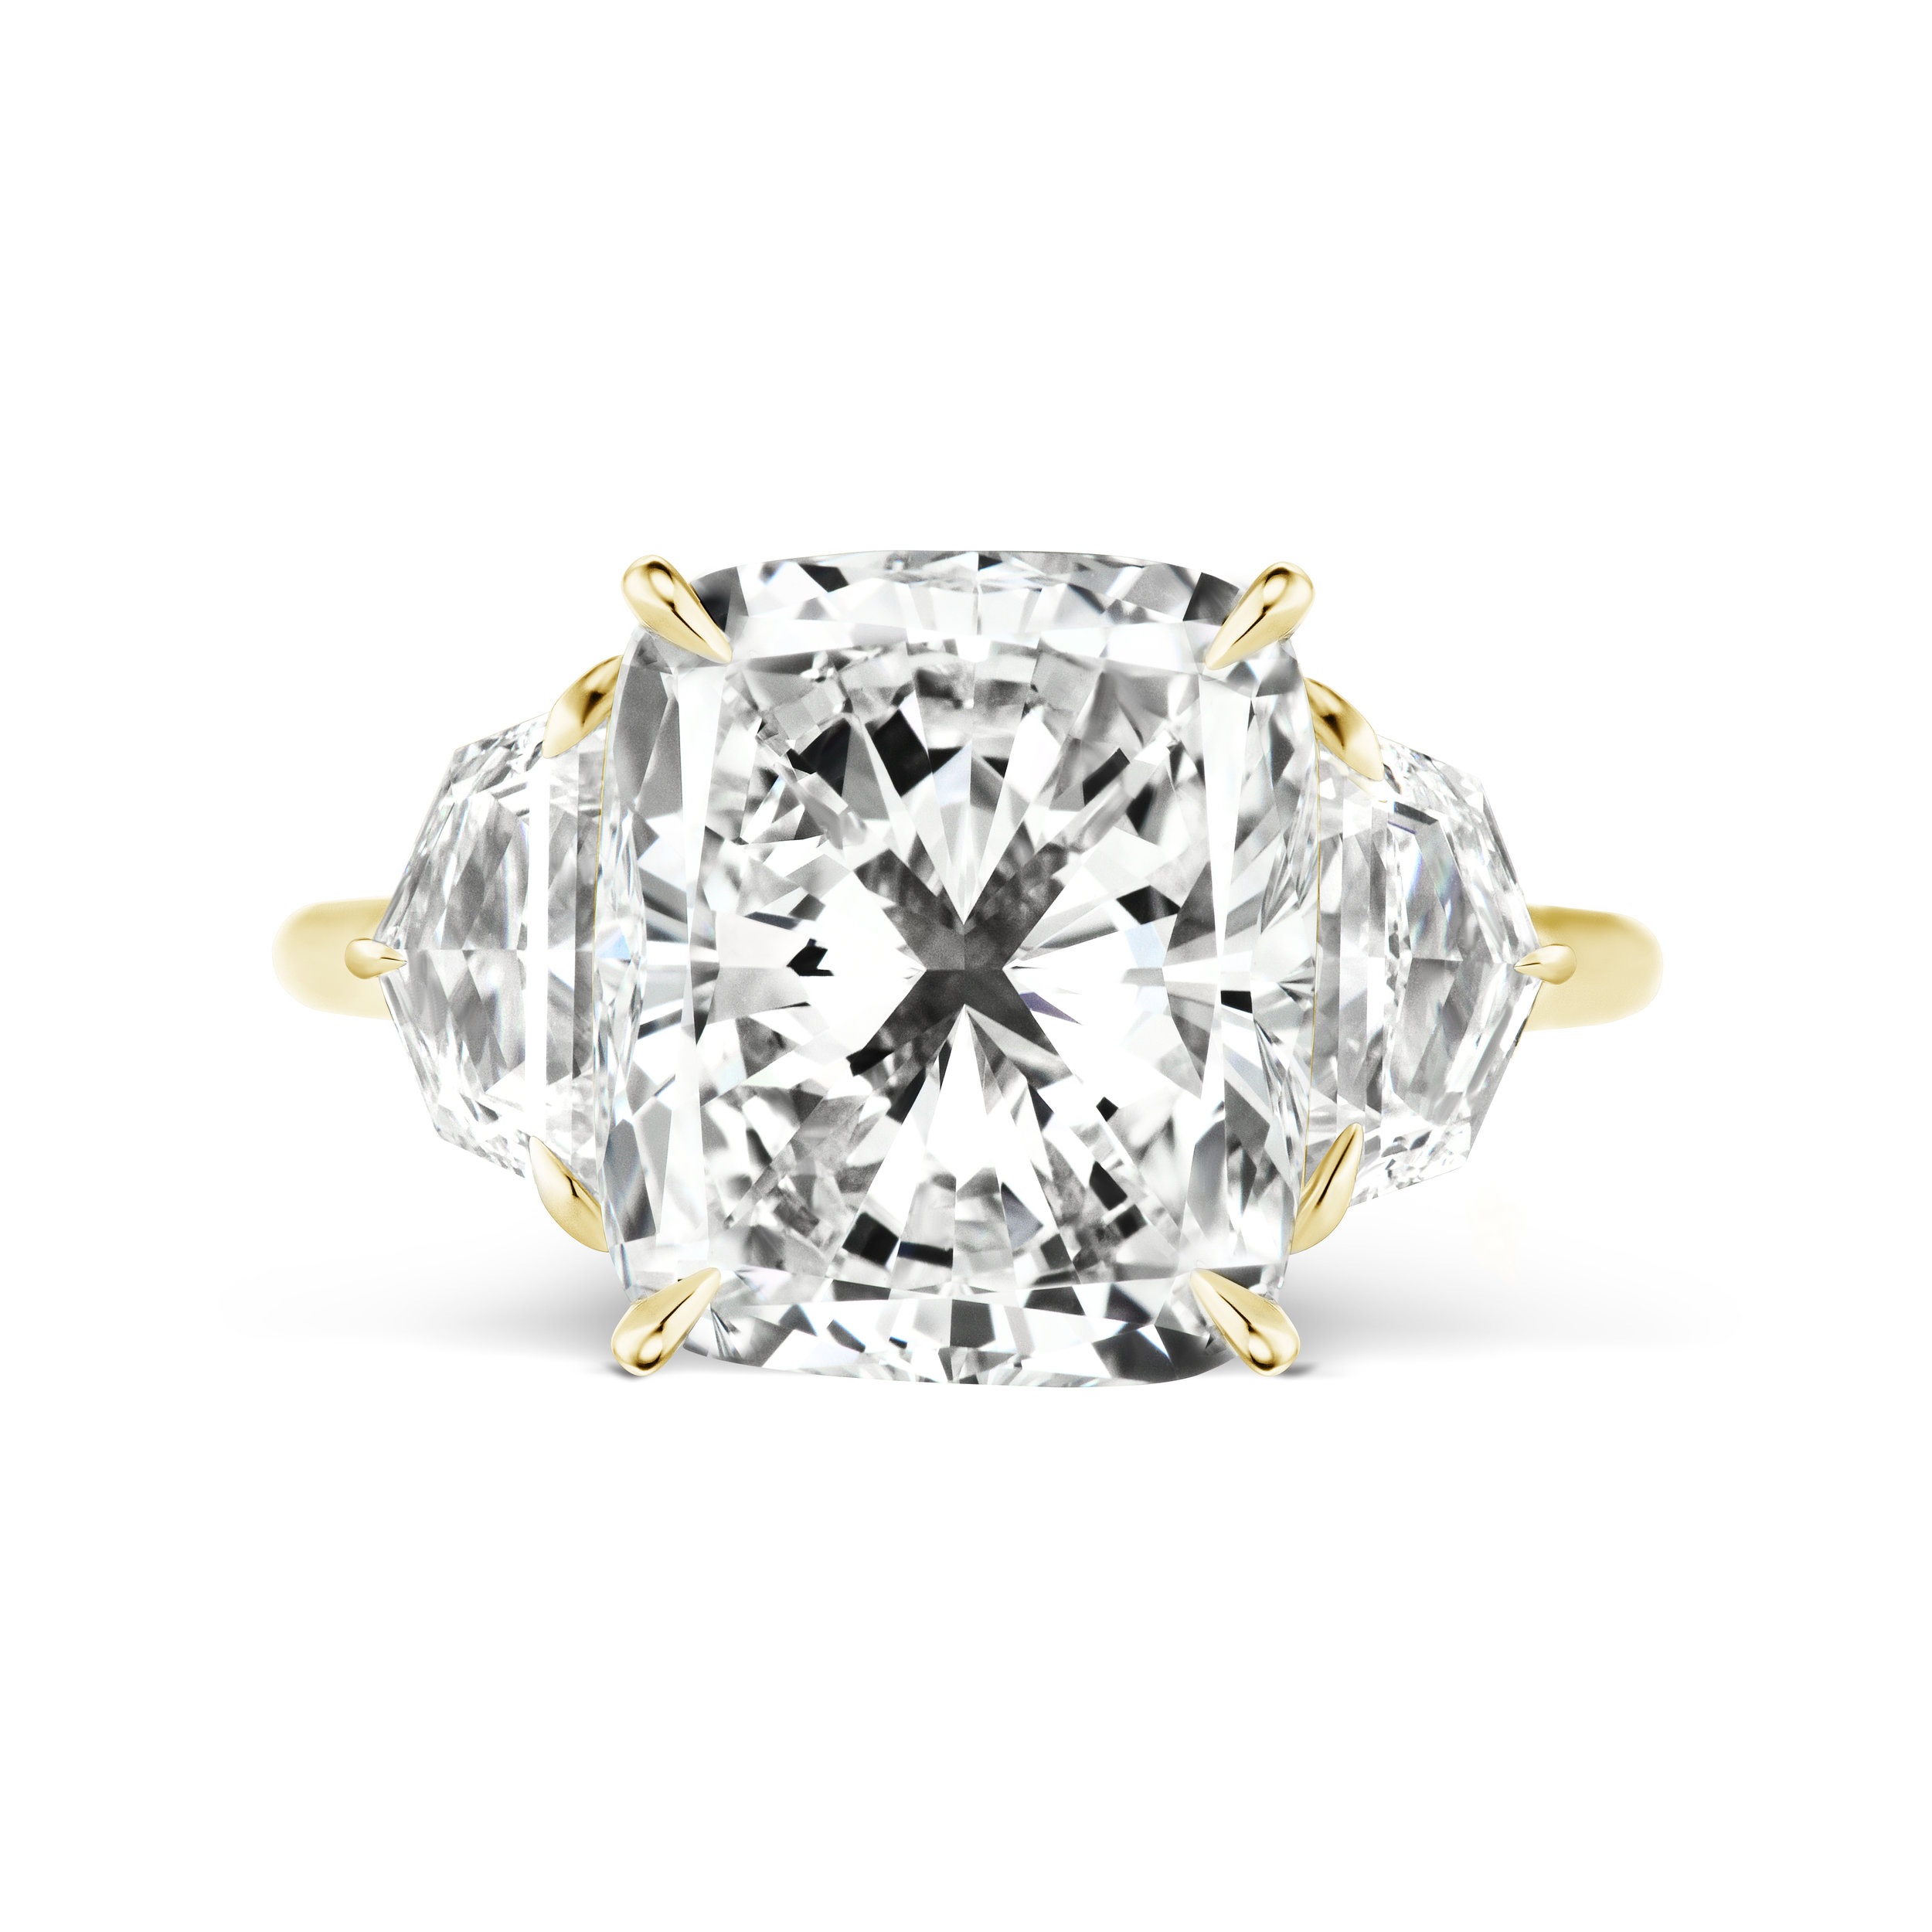 Cushion cut diamond ring with epaulette side stones, mounted in yellow gold.